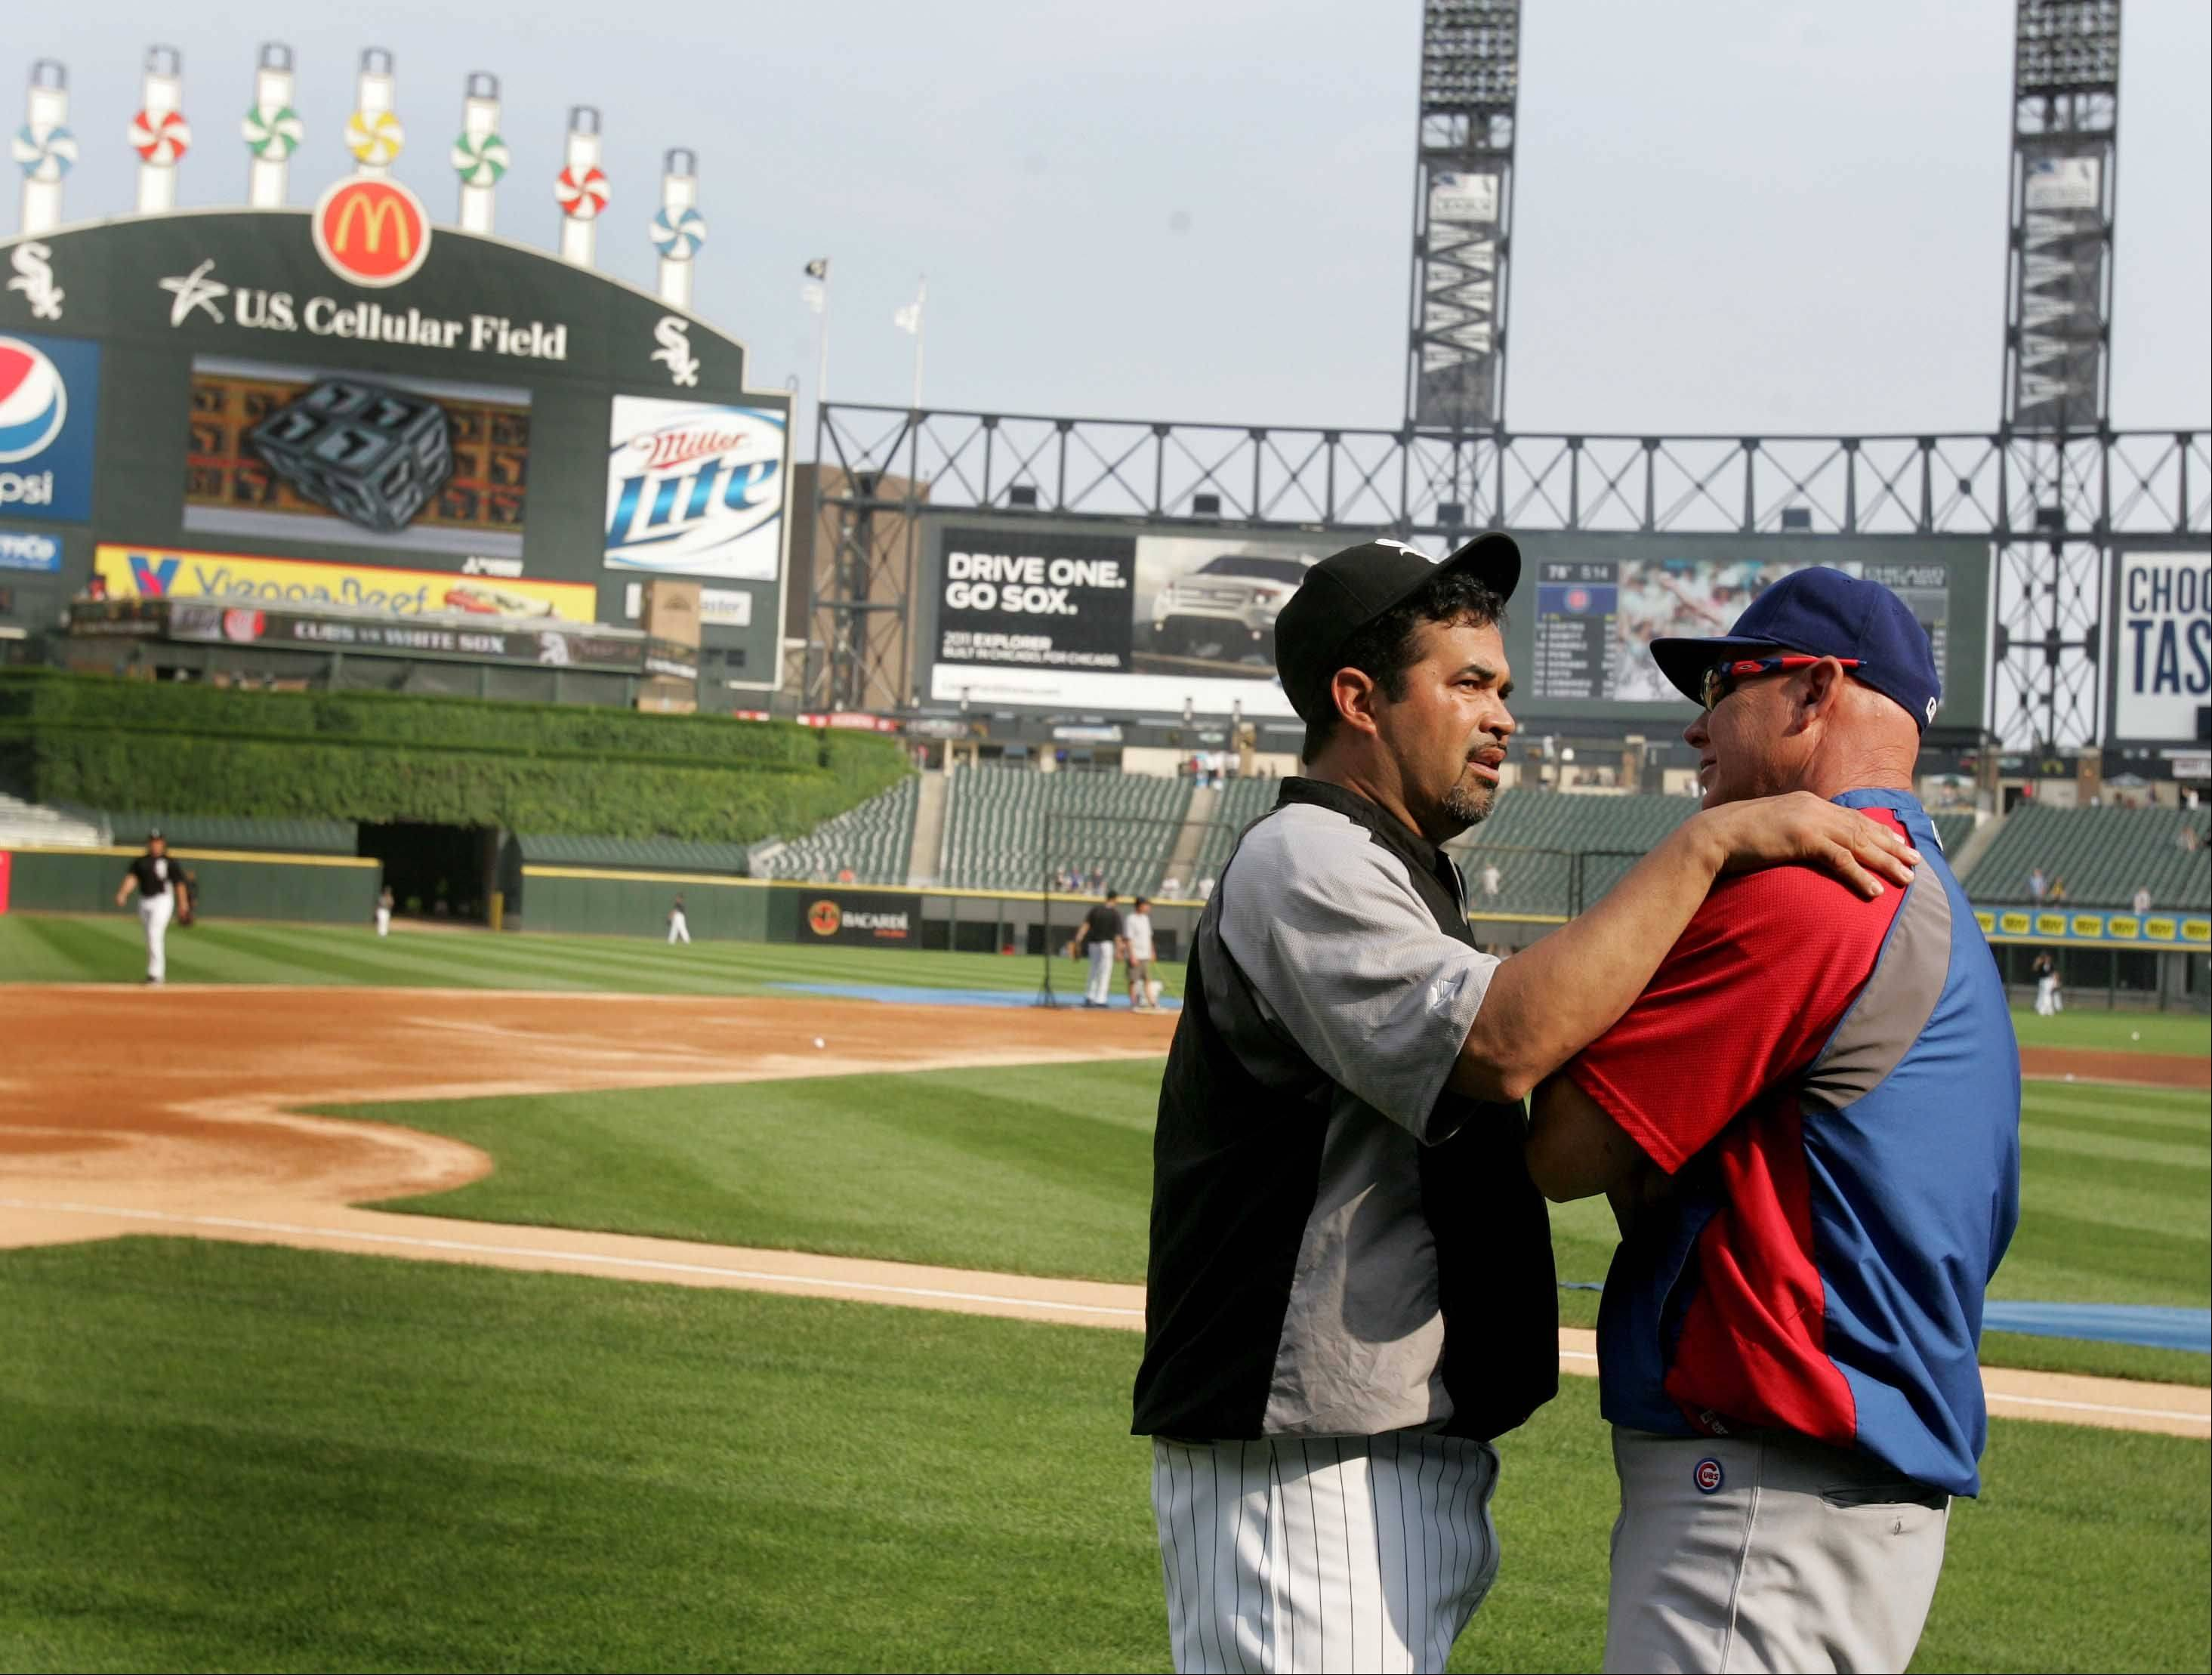 Chicago Cubs manger Mike Quade, right and Chicago White Sox manager Ozzie Guillen chat on the field before a crosstown matchup in 2010 at U.S. Cellular Field.